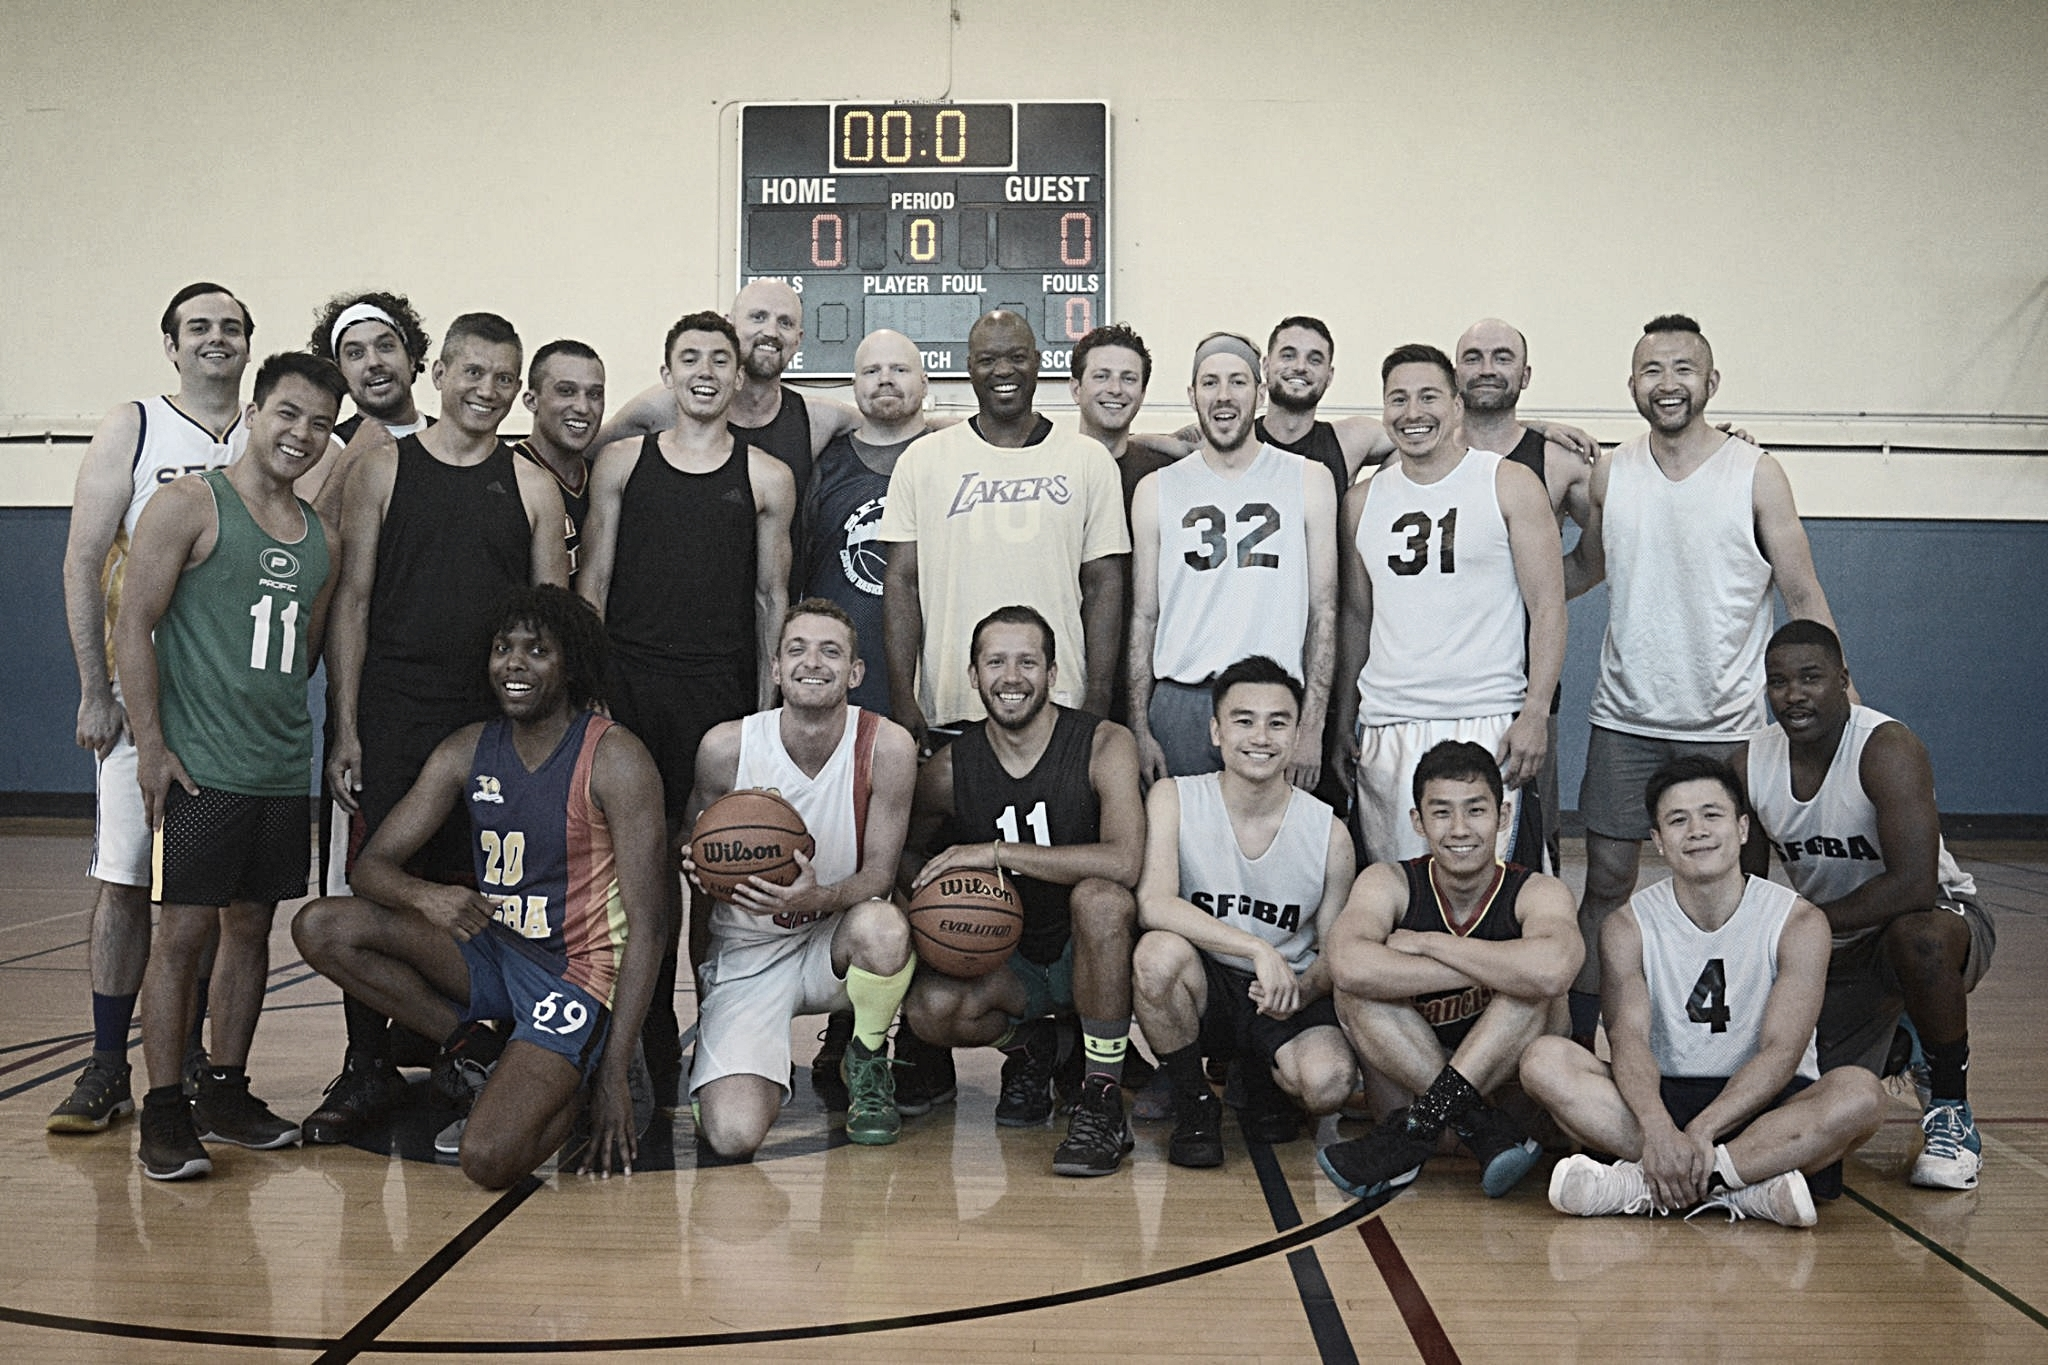 Donate Today - Your generous financial support helps us to maintain the league, support other community groups and ensure ongoing space for LGBTQ basketball.